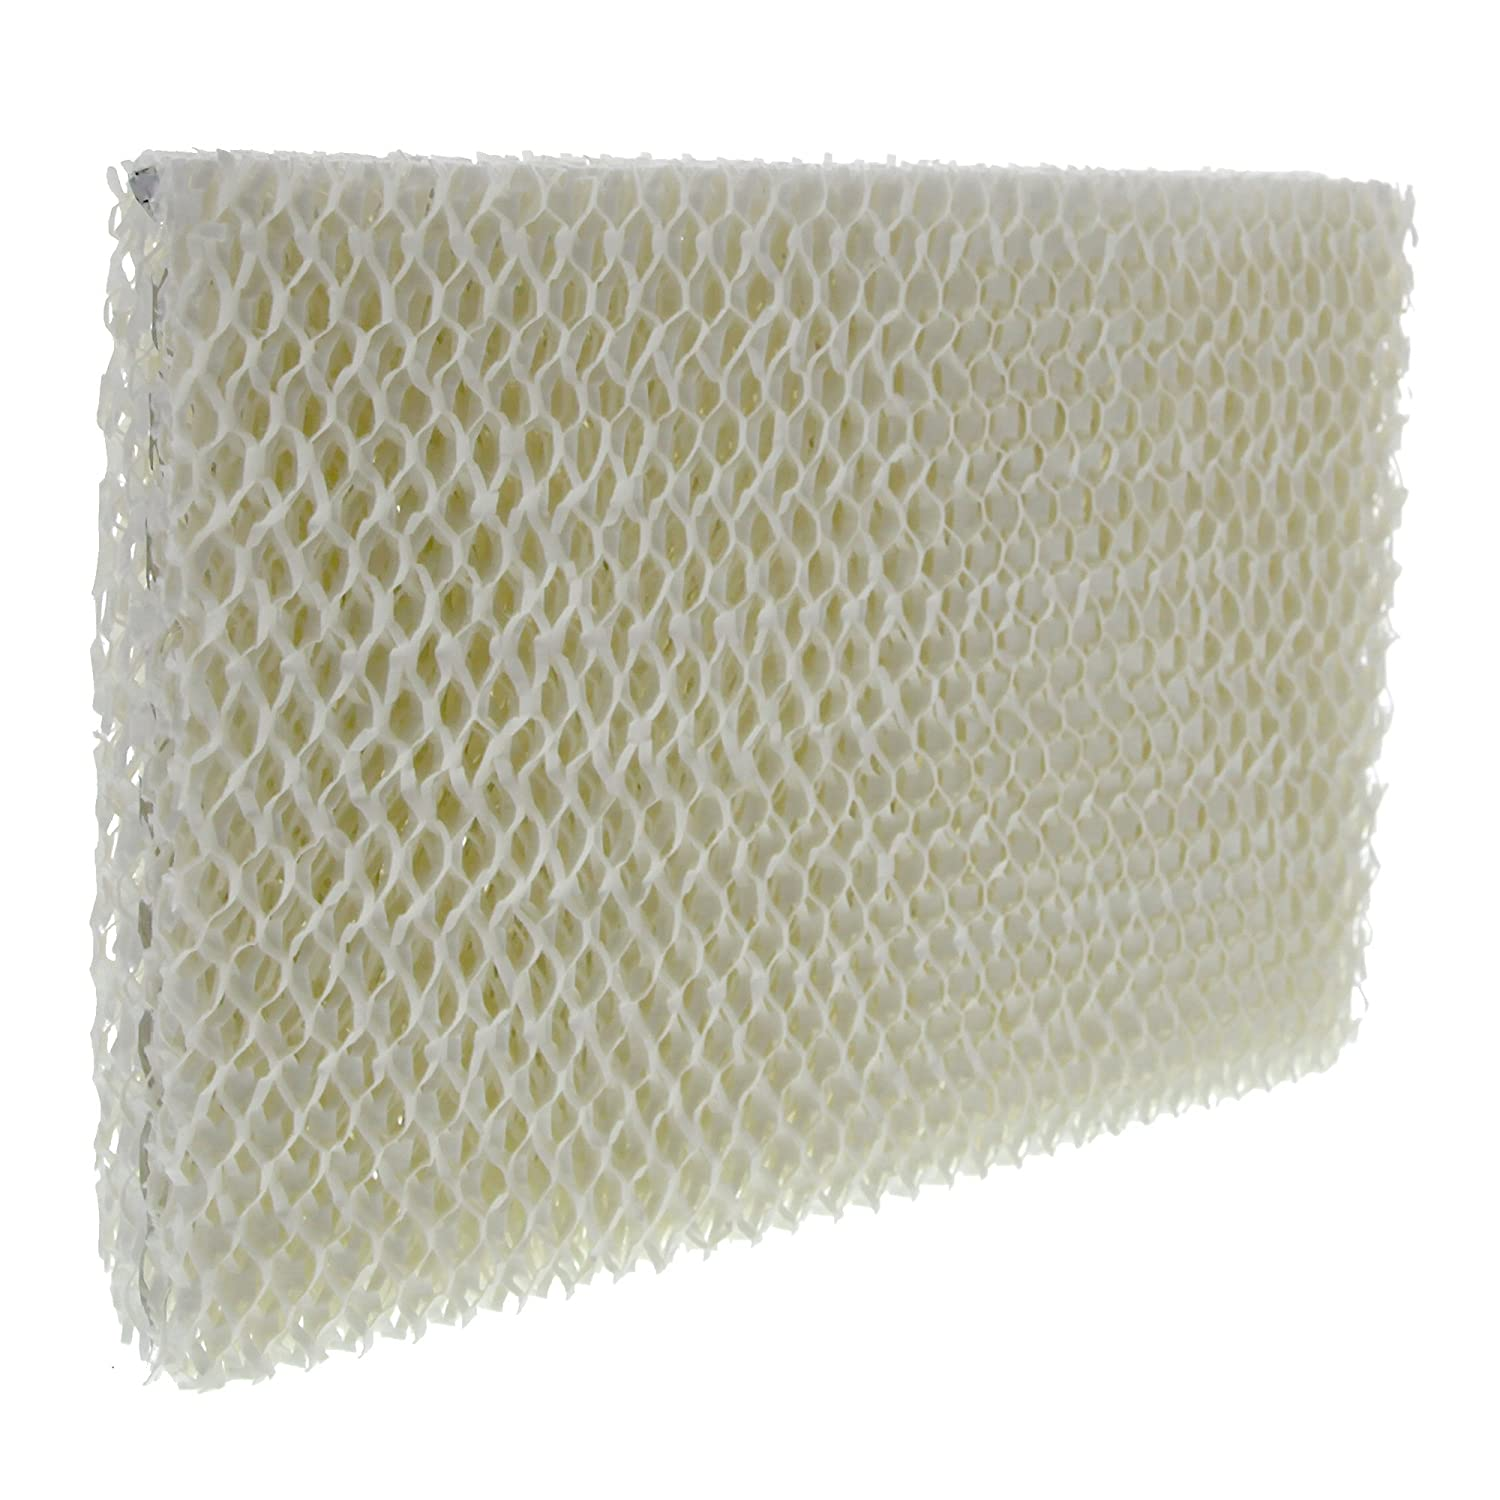 1-pack size 16x25x5 Purolator High End Filter P5-Merv 13 Sterling Seal /& Supply Replacement for Trion Air Bear STCC